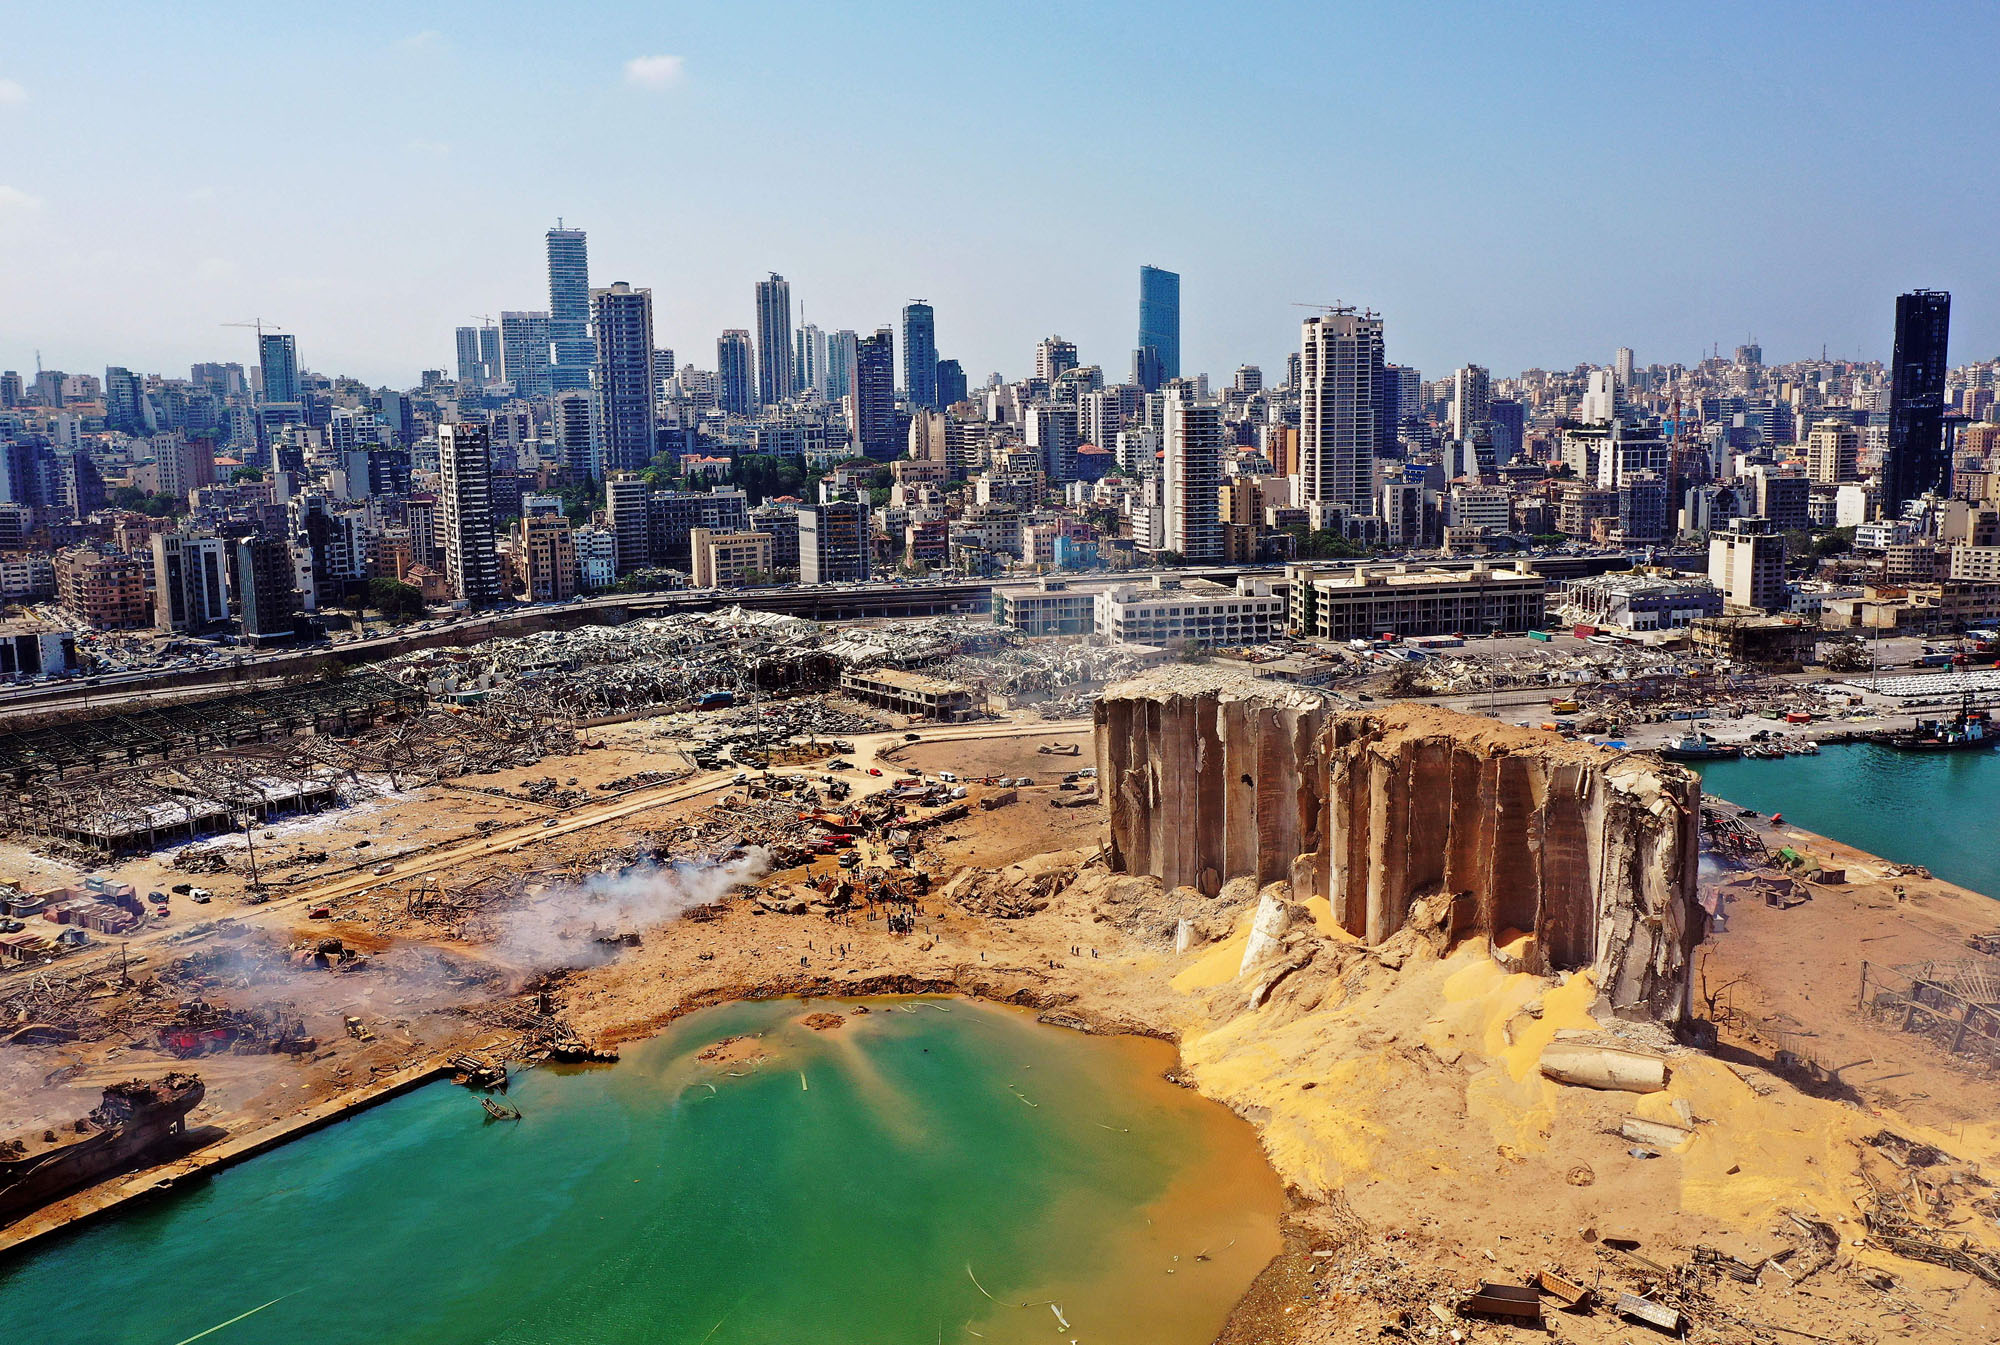 An aerial view of the Beirut port after the explosion. The blast created a 140 meter (460 feet) wide crater that has since filled with sea water. Photo: AFP.